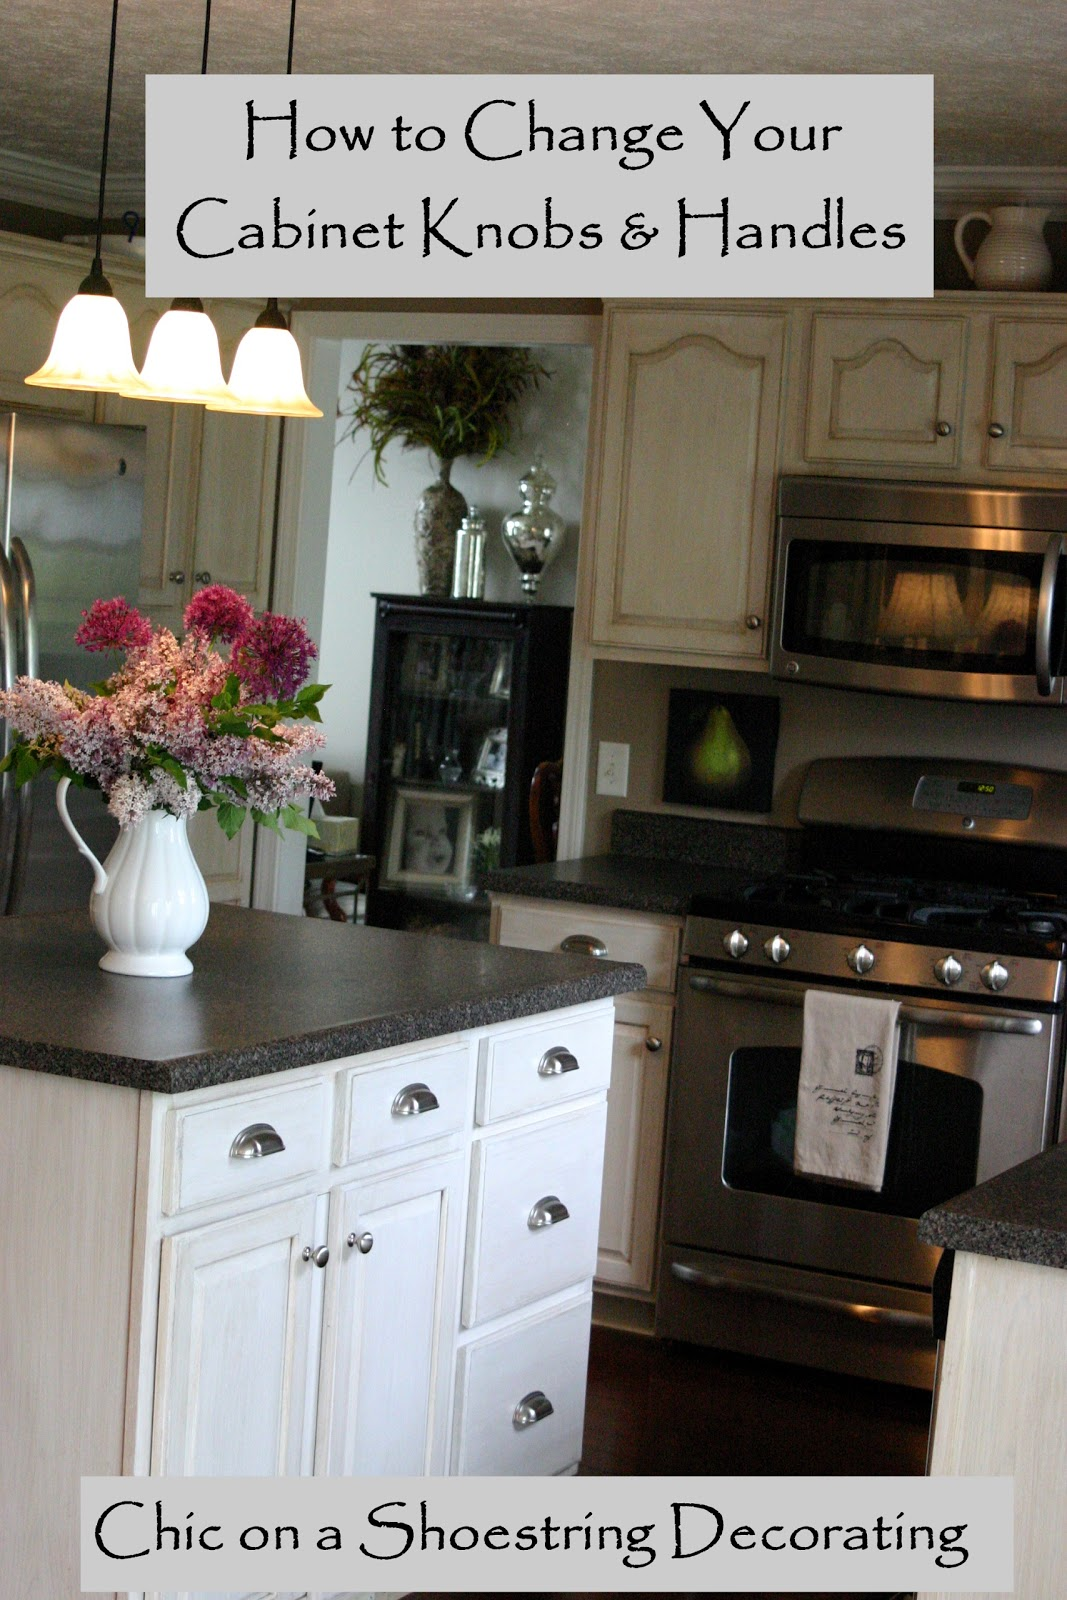 Chic on a shoestring decorating how to change your for Kitchen cabinets knobs